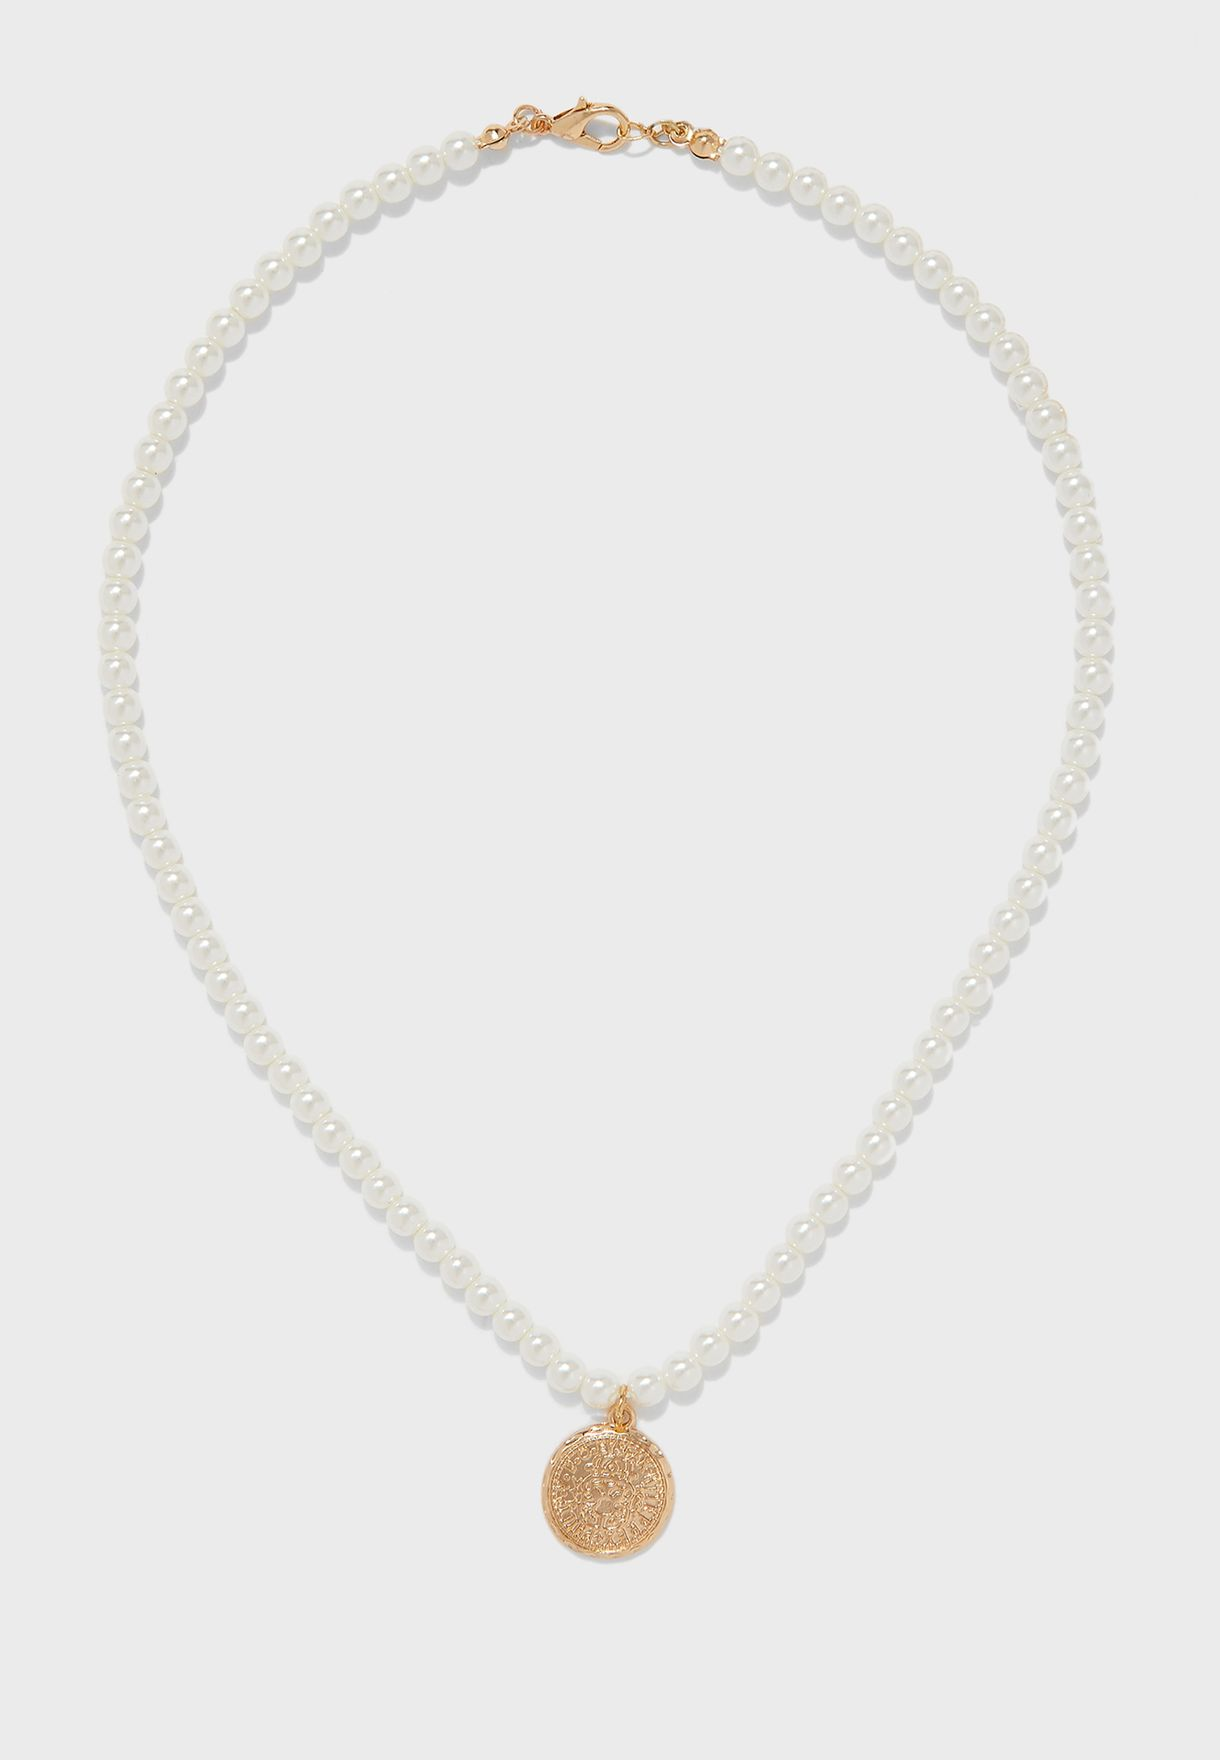 Triple Layered Pearl And Coloured Stones Necklace